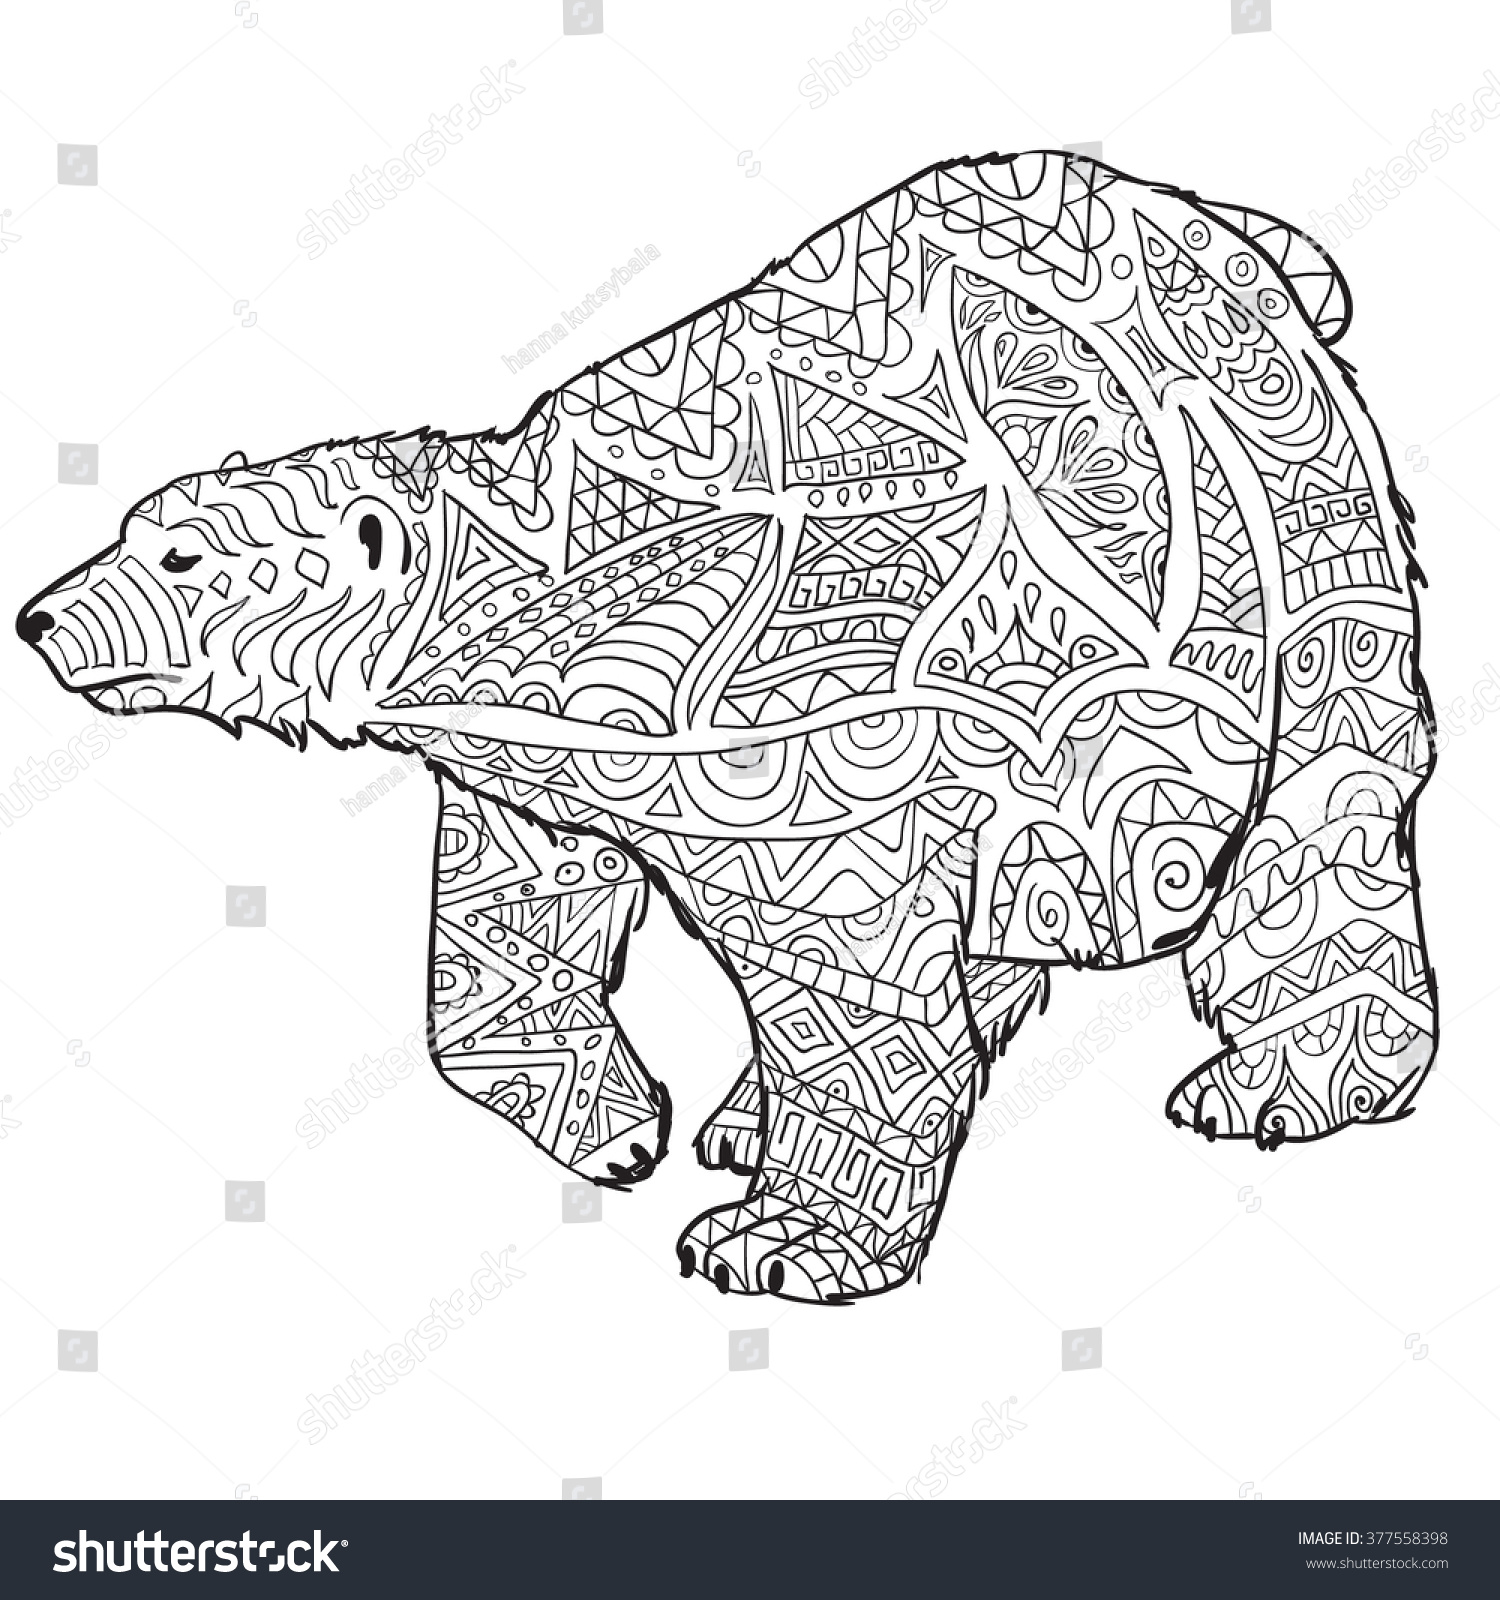 Hand Drawn Coloring Pages With Polar Bear Zentangle Illustration For Adult Anti Stress Books